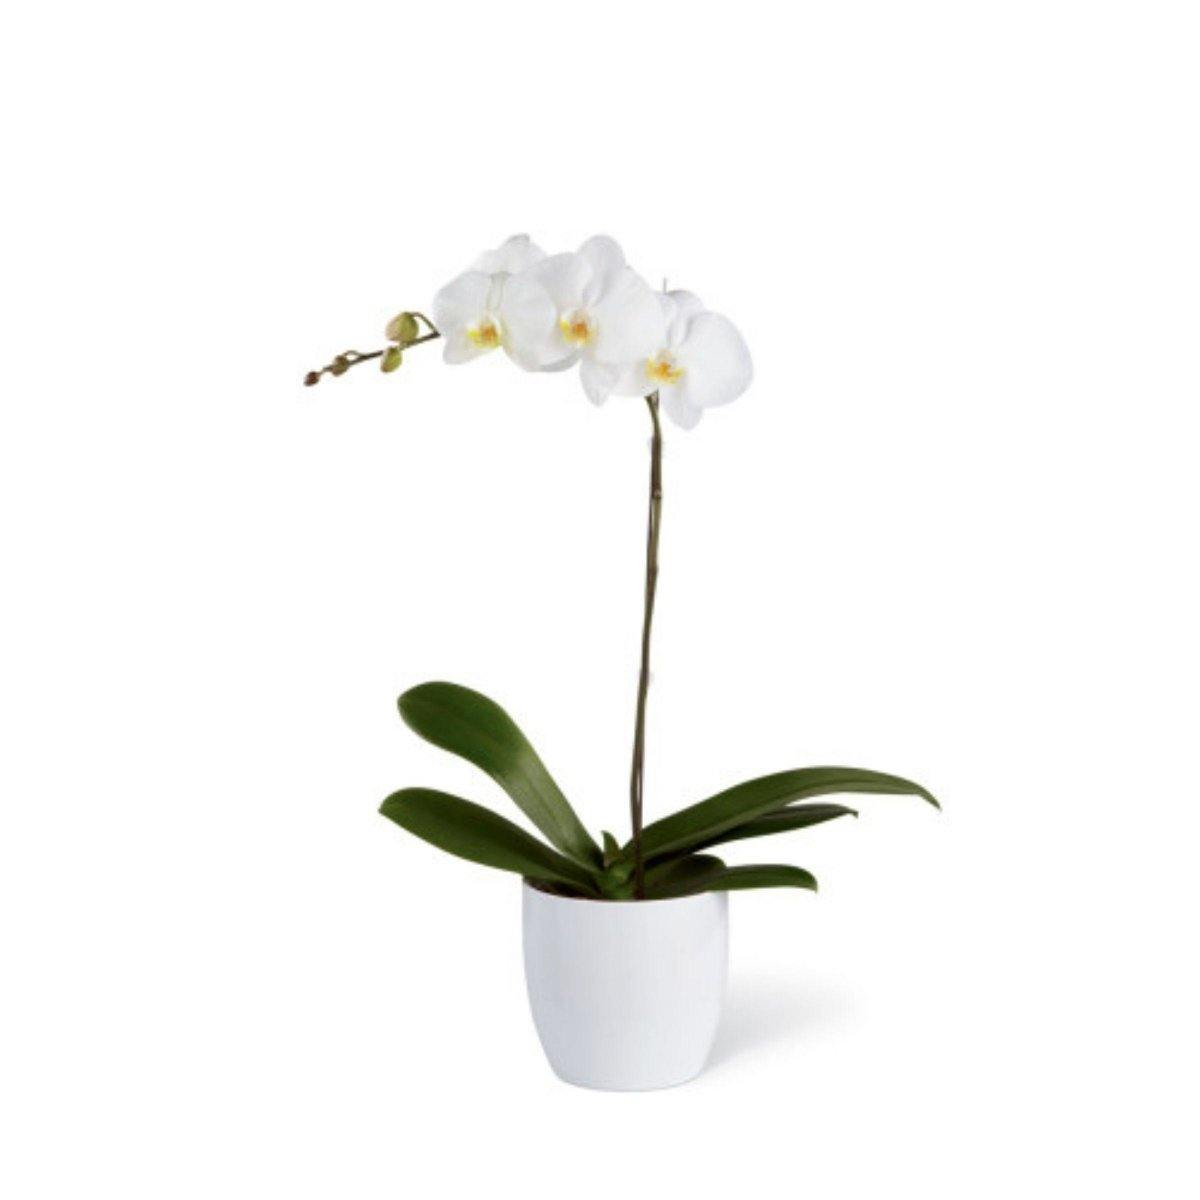 The FTD® White Orchid Ceramic Planter